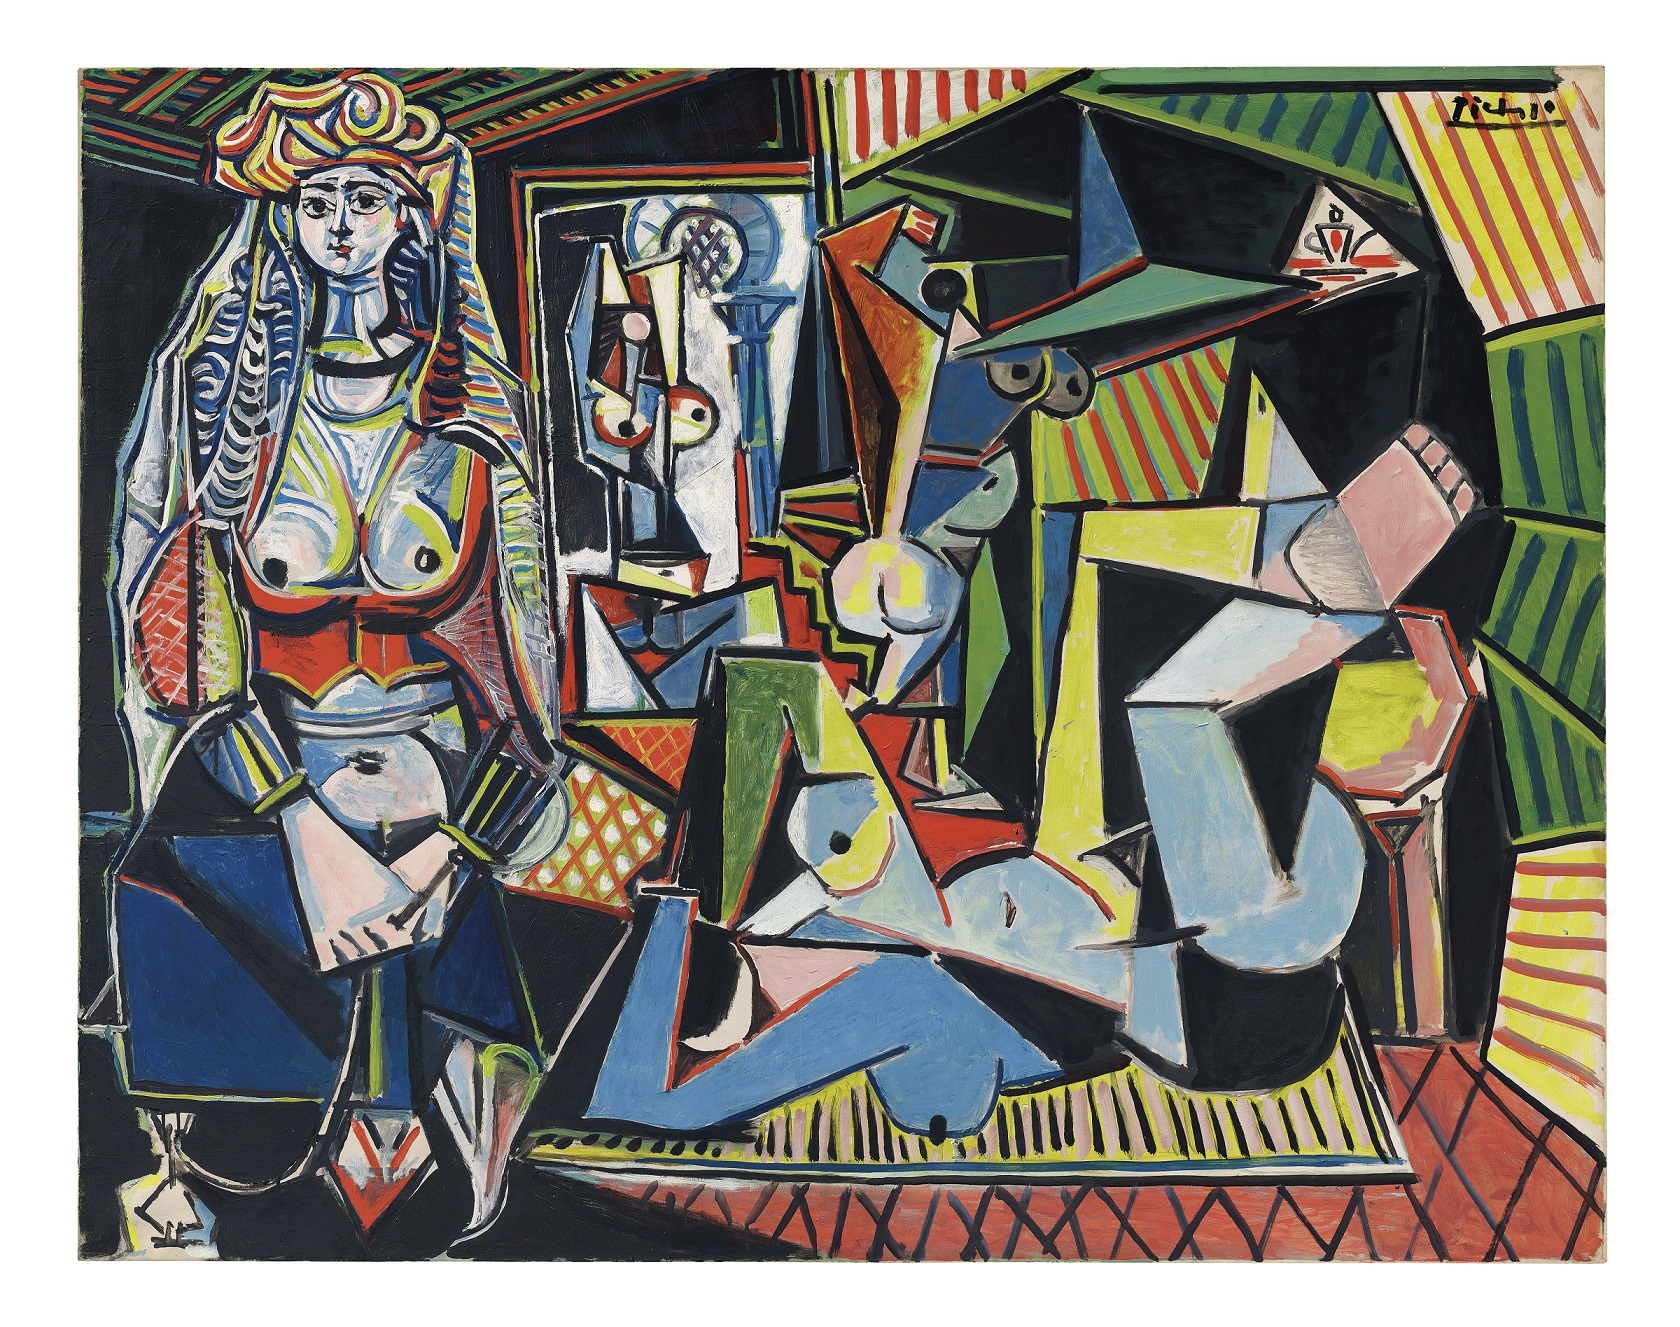 "Pablo Picasso (Spanish, 1881-1973): Les femmes d'Alger (Version ""O""), 1955. Oil on canvas, 114 x 146.4 cm. Private Collection. © Succession Picasso/DACS, London 2015. © This artwork may be protected by copyright. It is posted on the site in accordance with fair use principles."